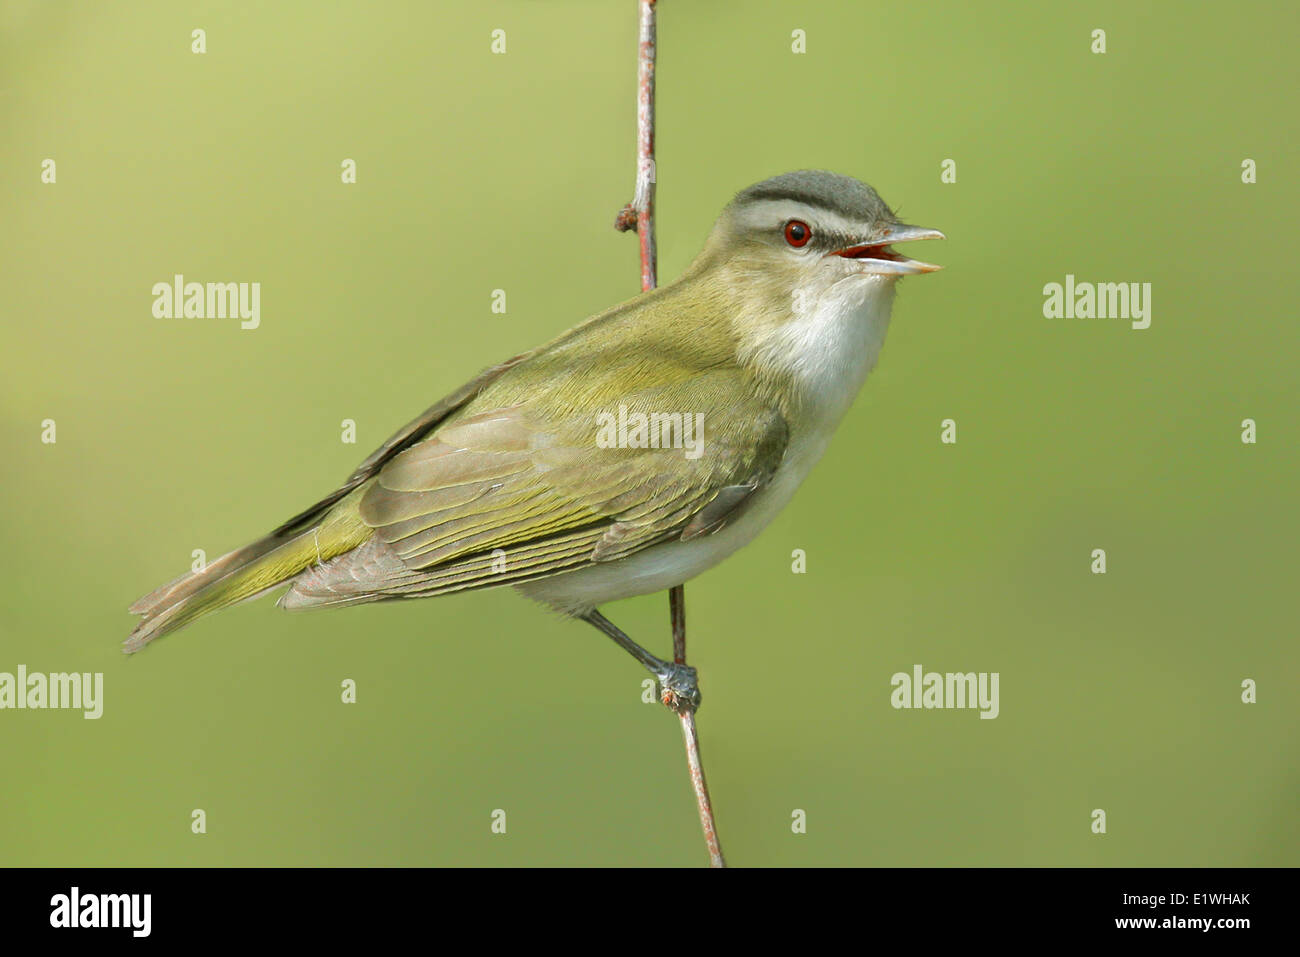 A Red-eyed Vireo, Vireo olivaceus, perched on a twig in Saskatoon, Saskatchewan - Stock Image